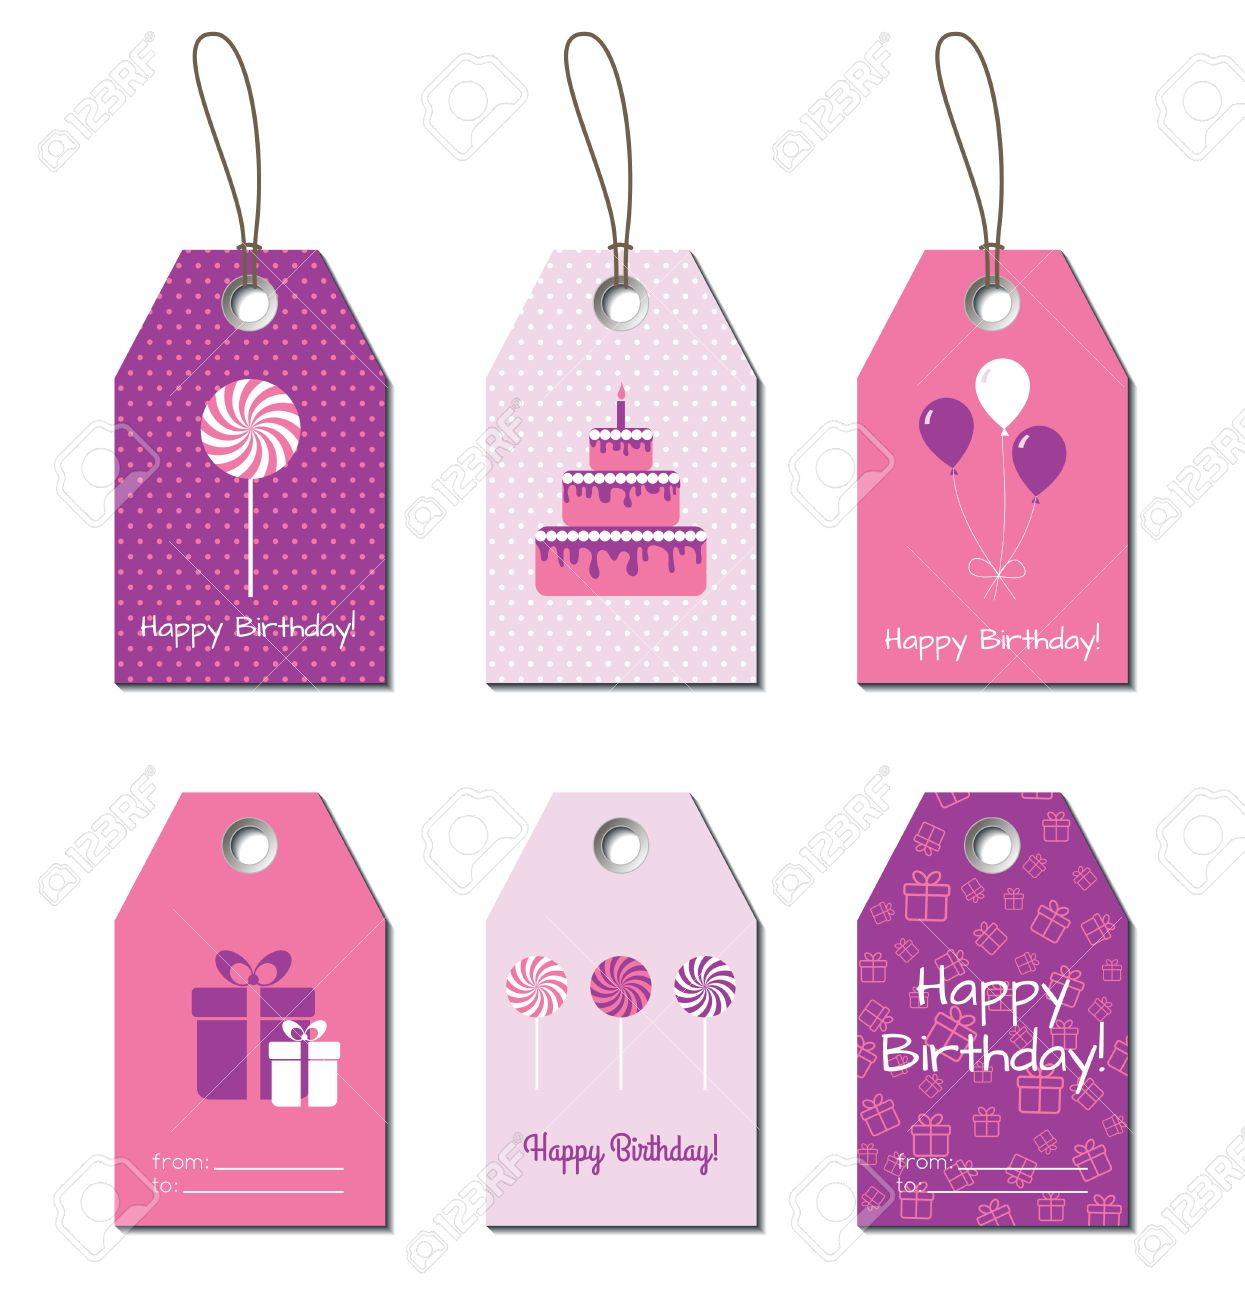 birthday card labels ; 53436025-happy-birthday-tags-birthday-greetings-small-gift-cards-labels-for-birthday-gifts-design-Stock-Photo